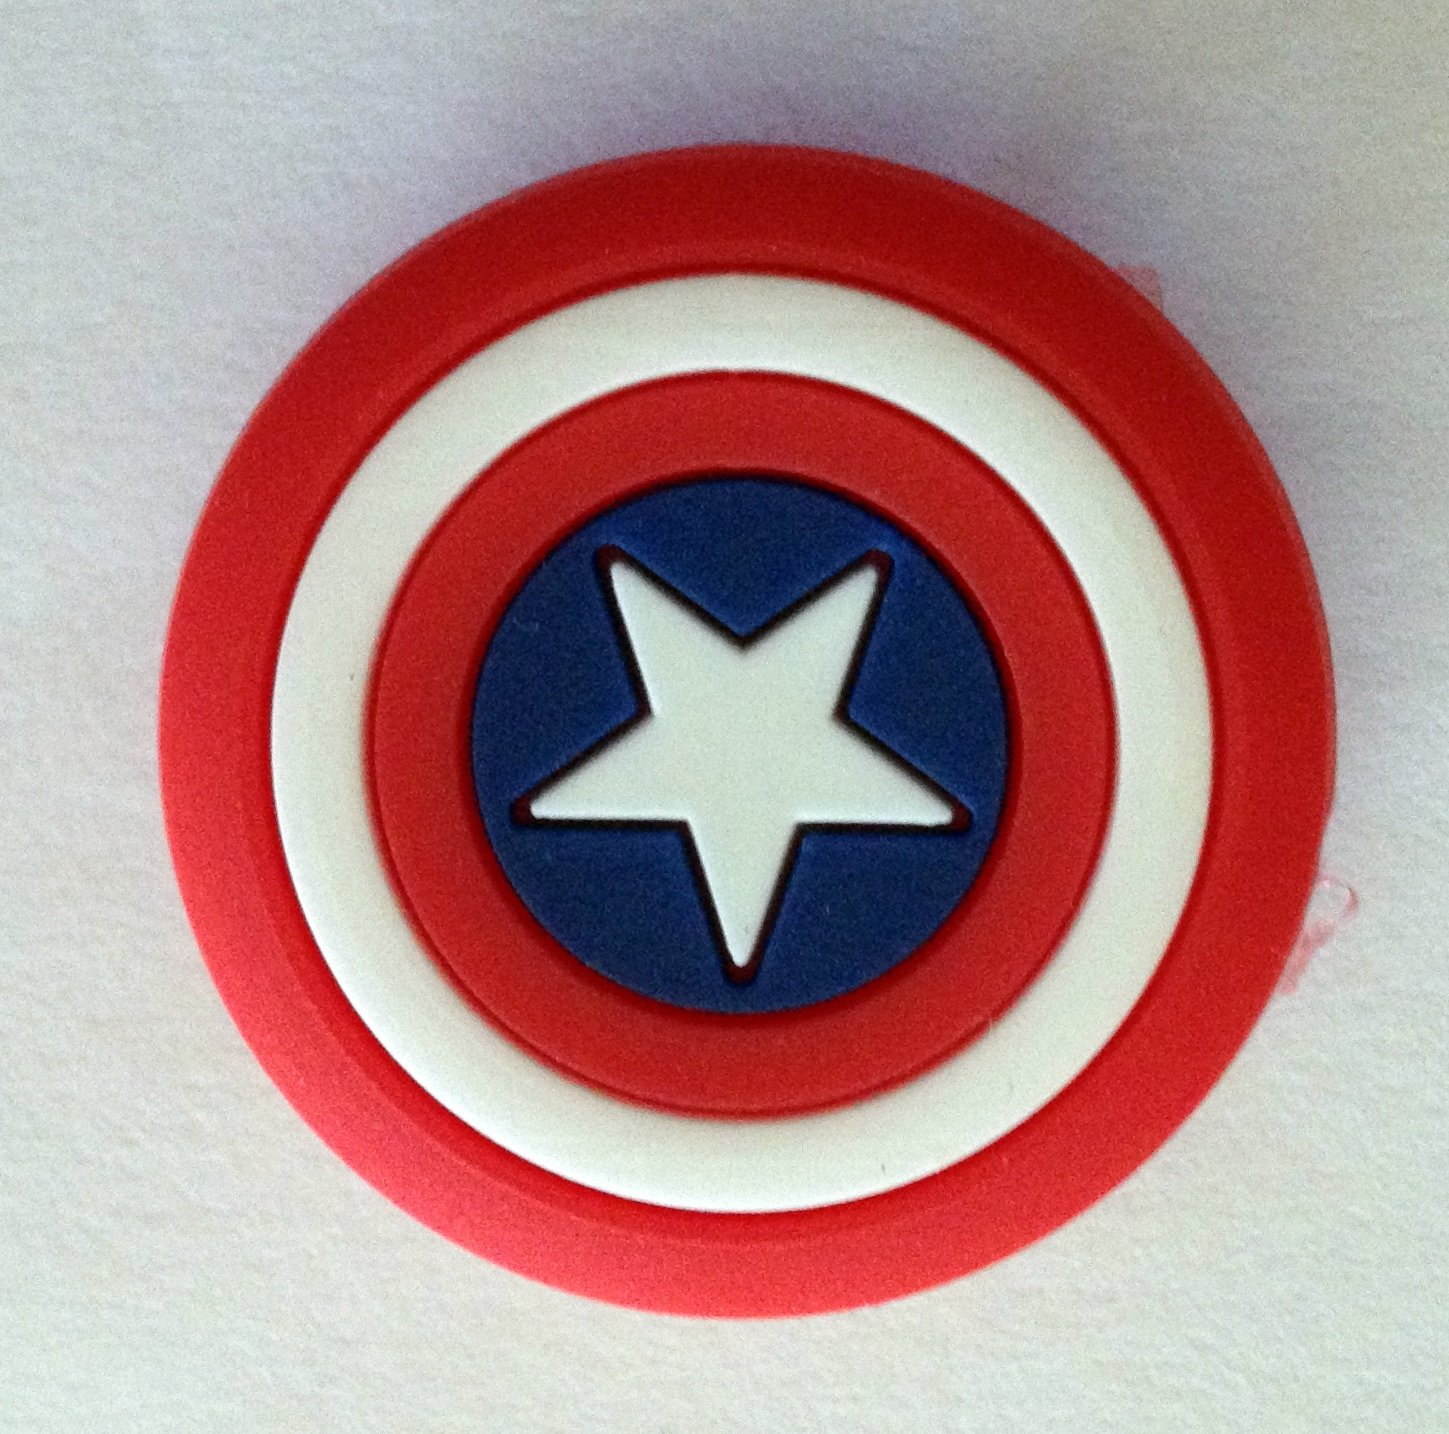 Captain America Comic Book Emblem Shoe Charm Party Favors